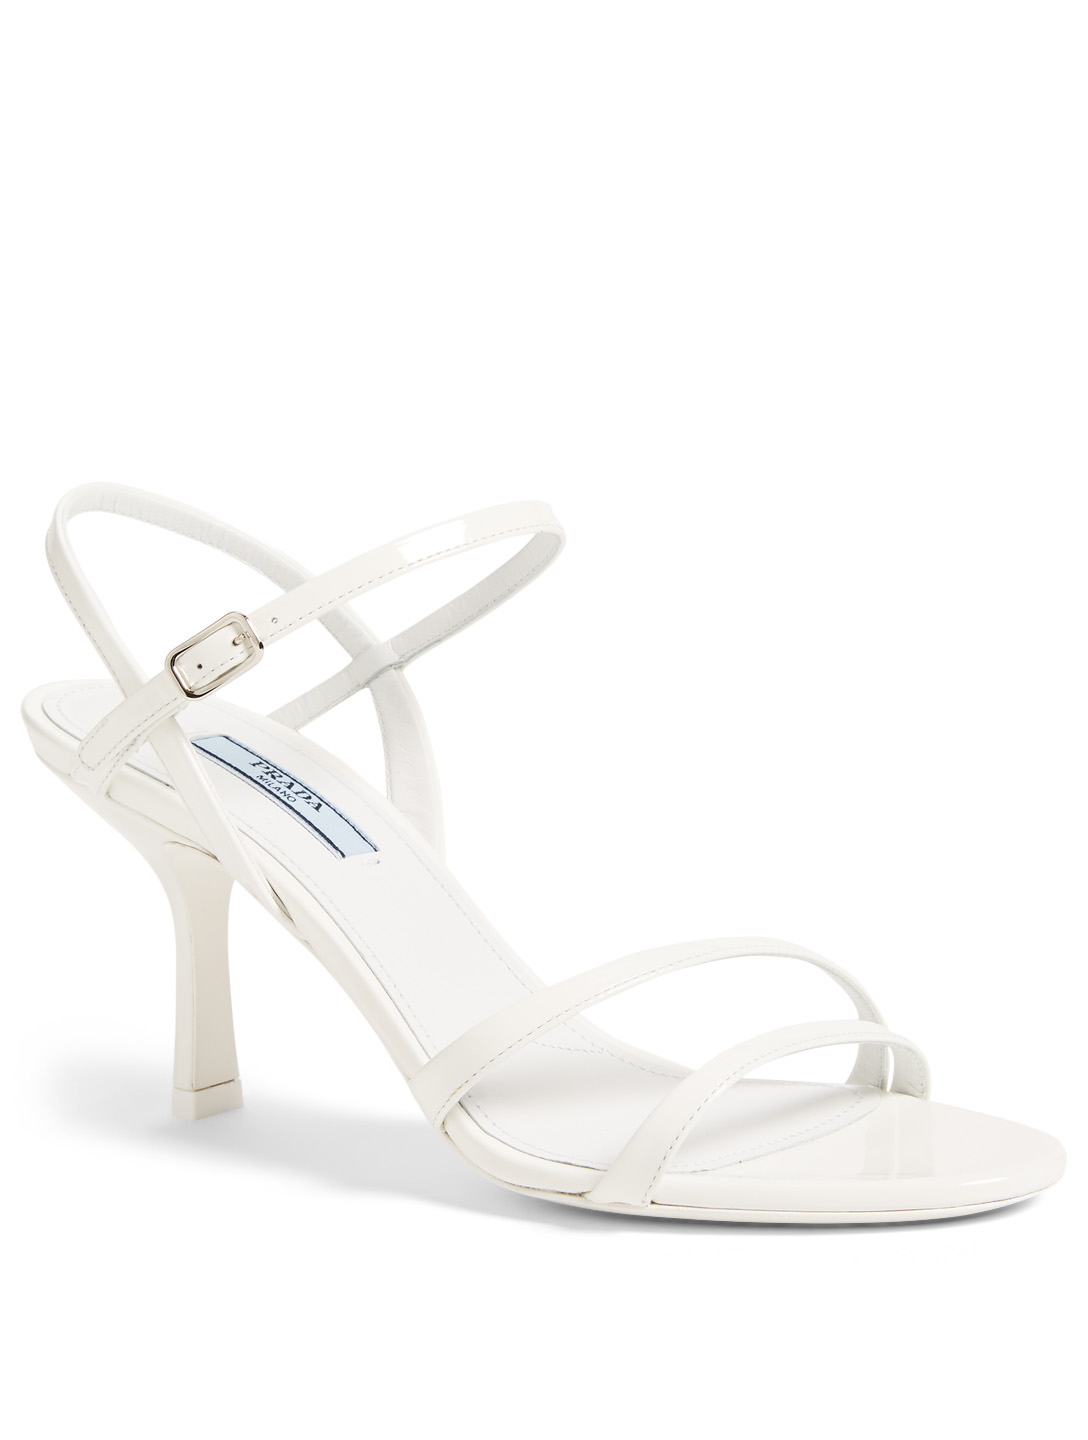 PRADA Bare Patent Leather Heeled Sandals Women's White